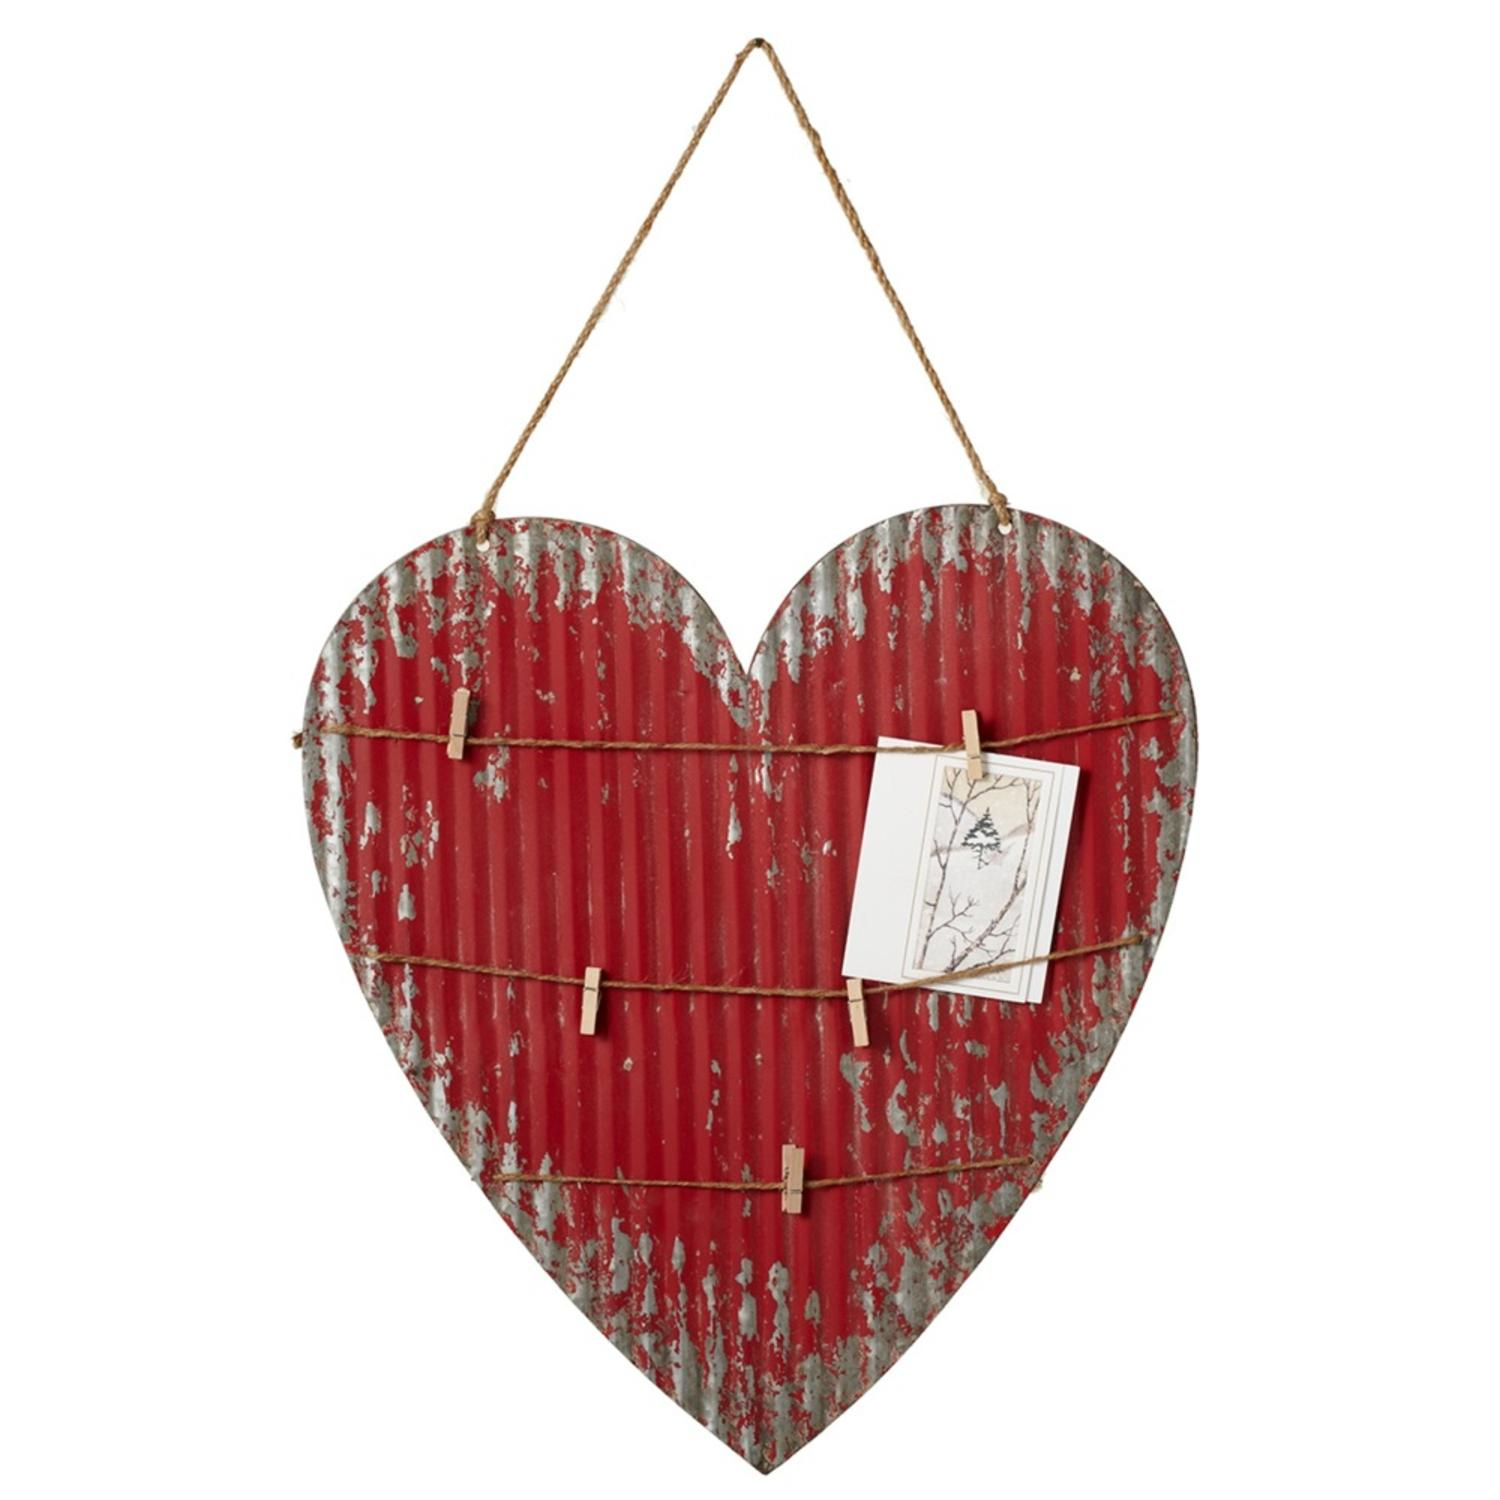 Set Of 2 Distressed Red Corrugated Heart Shaped Metal Message Board Throughout Well Known 2 Piece Heart Shaped Fan Wall Decor Sets (View 2 of 20)